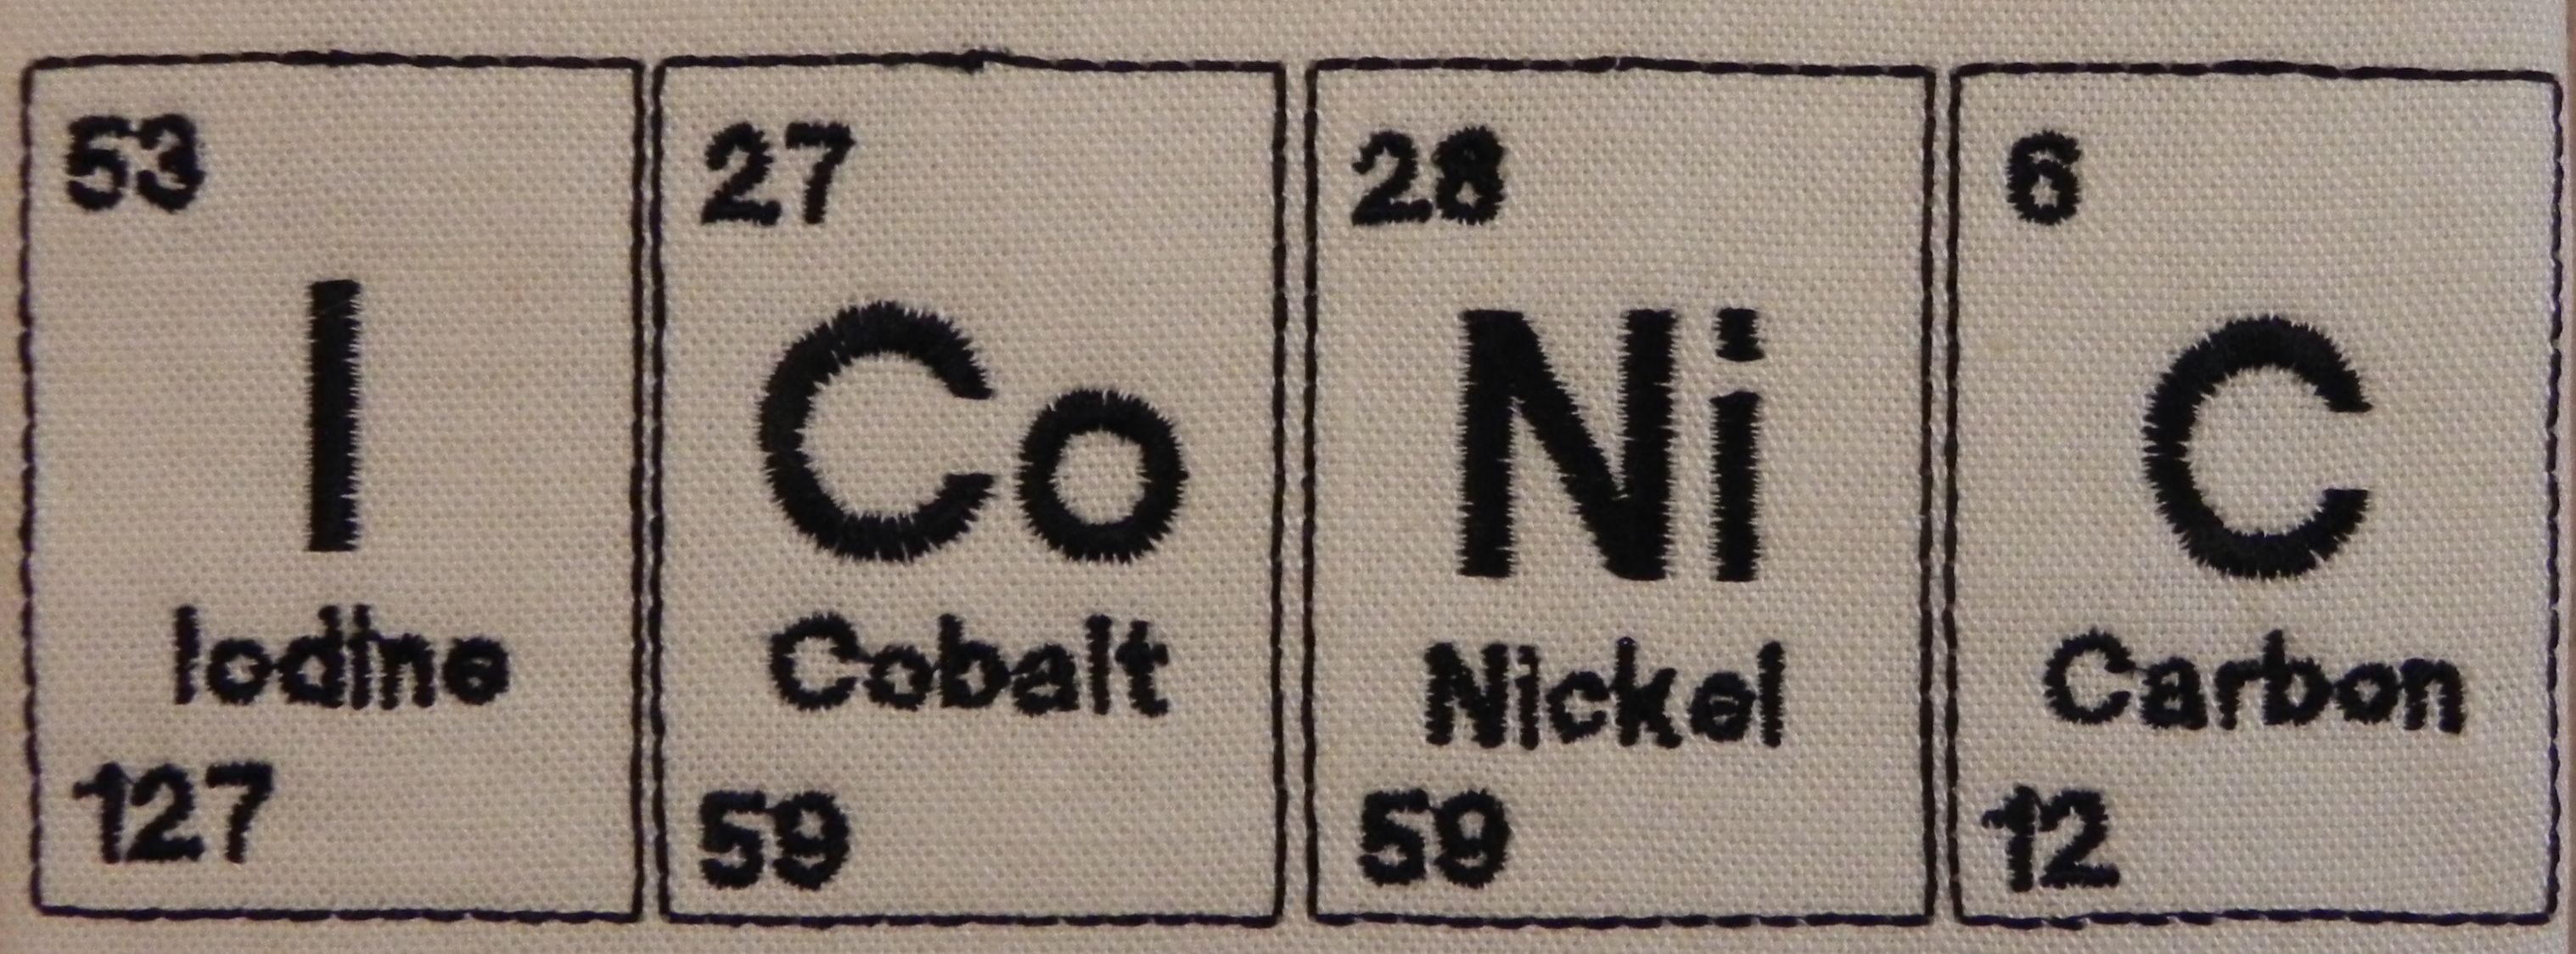 Free embroidery designs cute embroidery designs a second periodic table design im really pleased with this one gamestrikefo Images